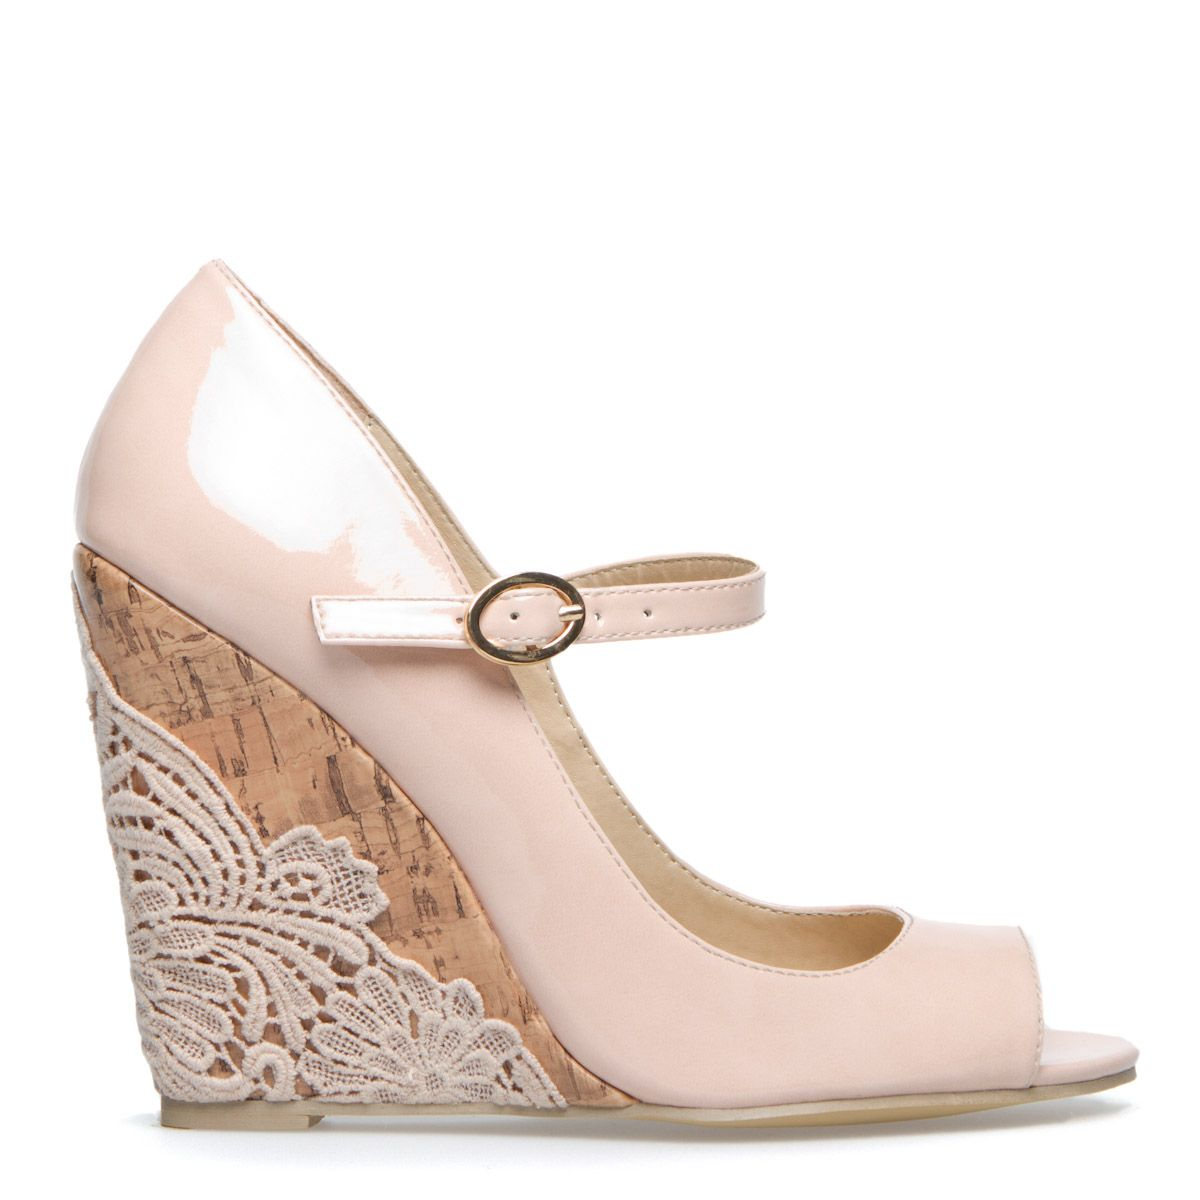 Lucie A Glossy P Toe Wedge